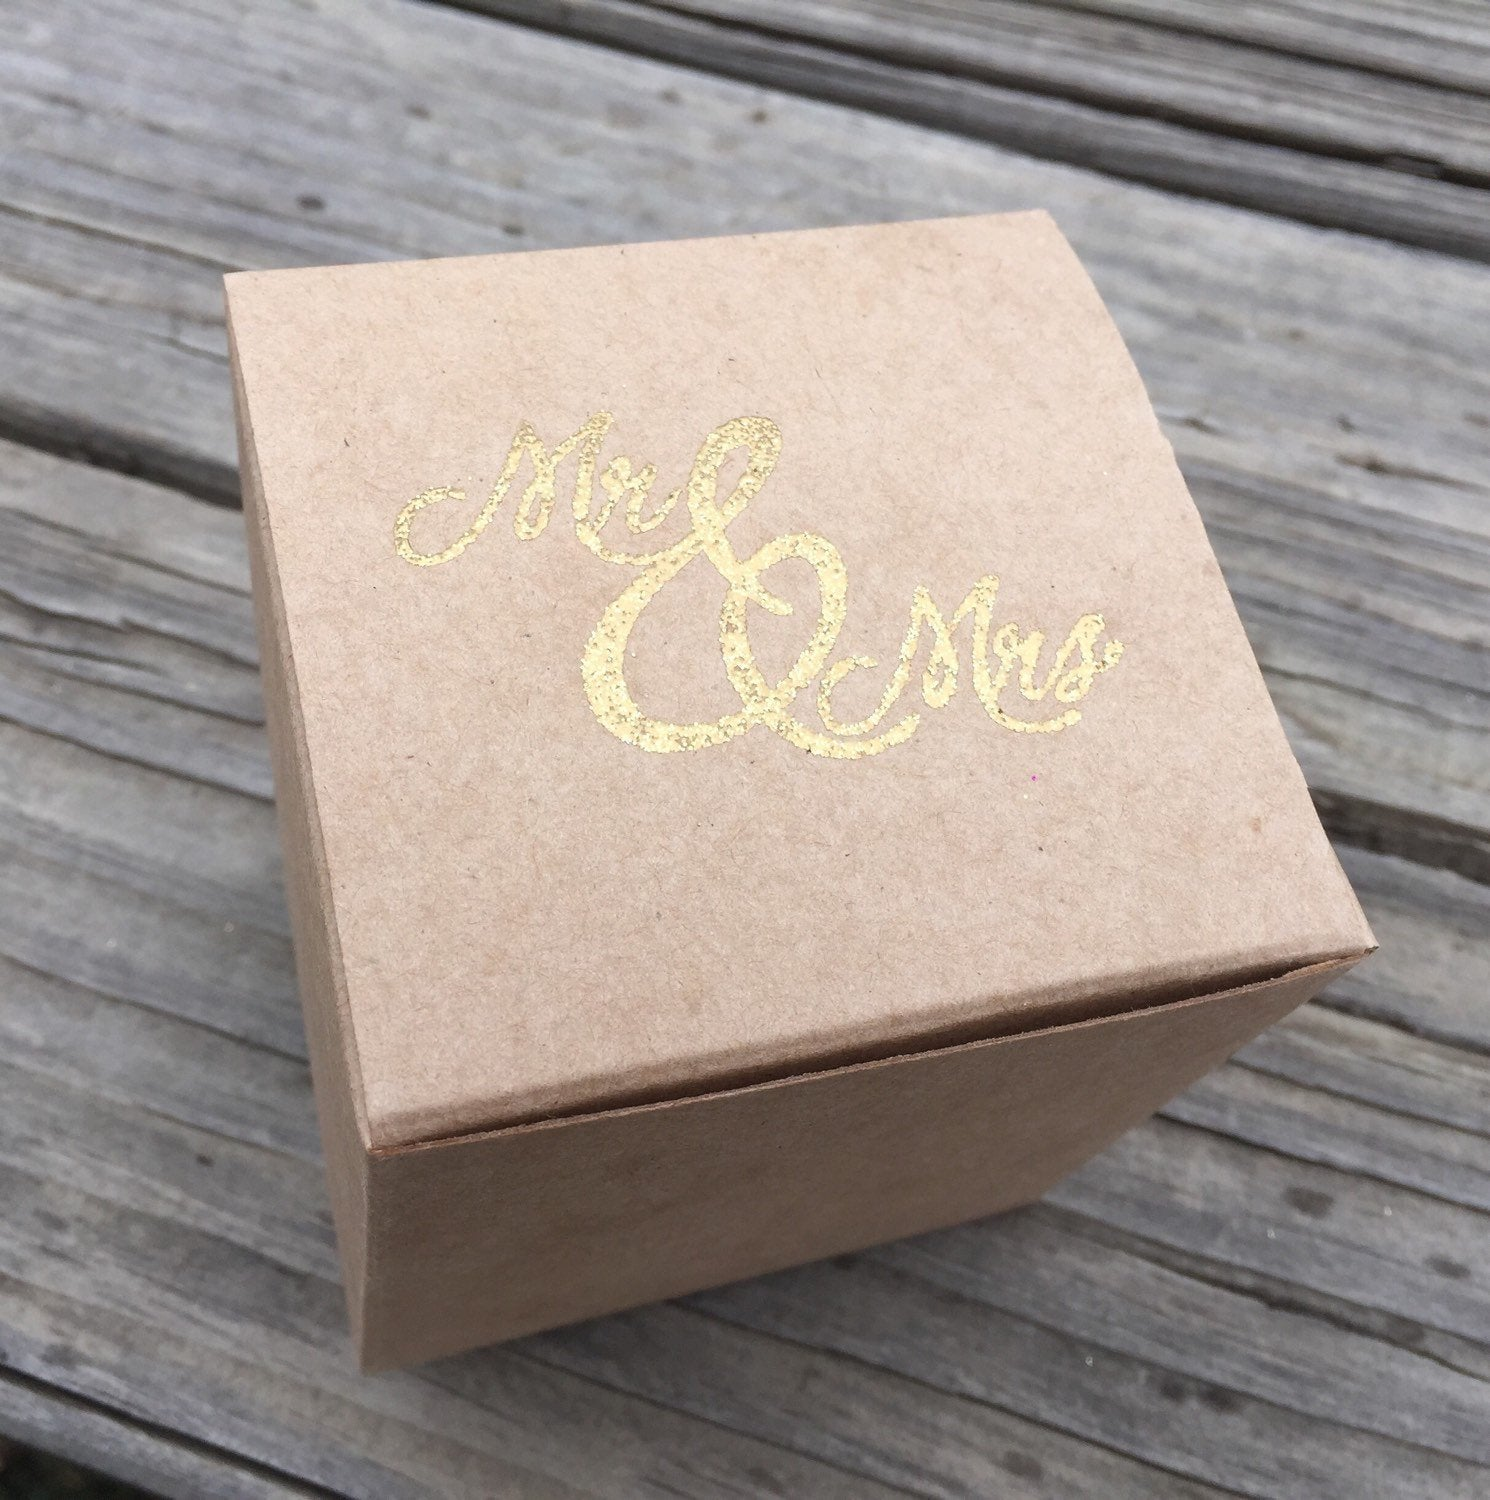 10 Embossed Wedding Favor Boxes Cupcake Boxes Treat Boxes Small